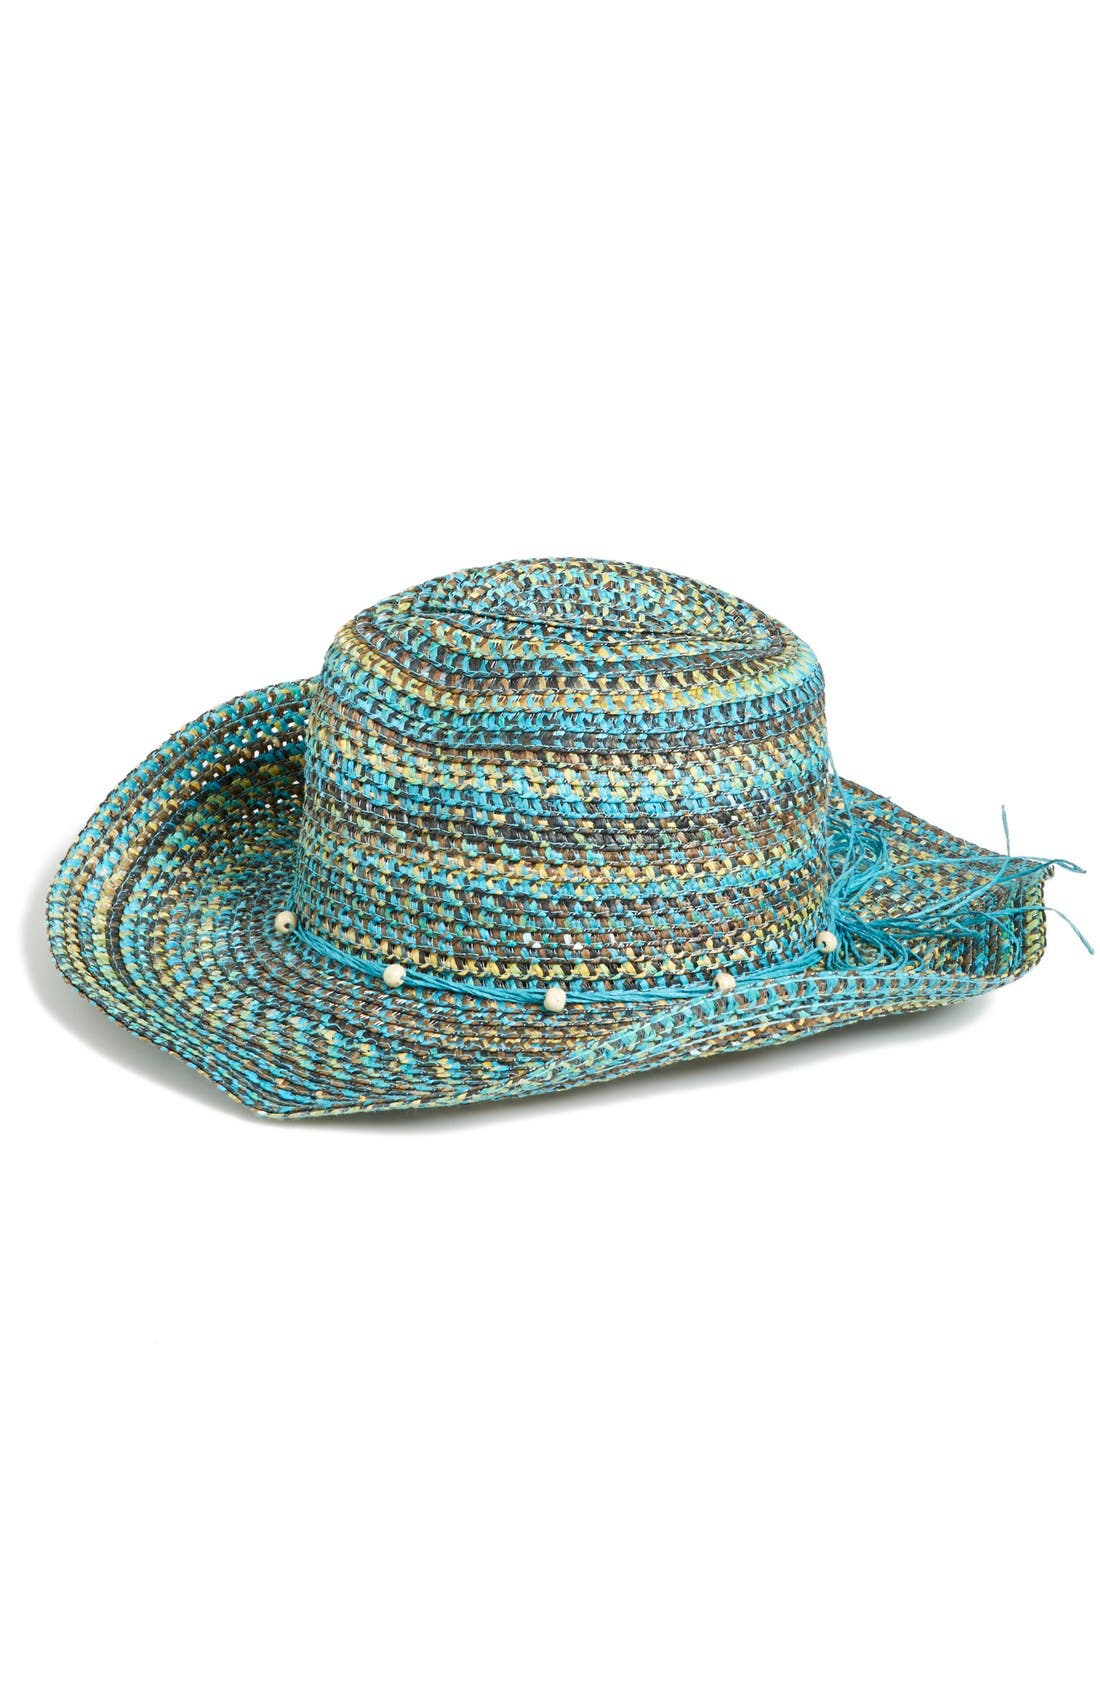 Multicolor Straw Hat,                             Main thumbnail 1, color,                             Turquoise